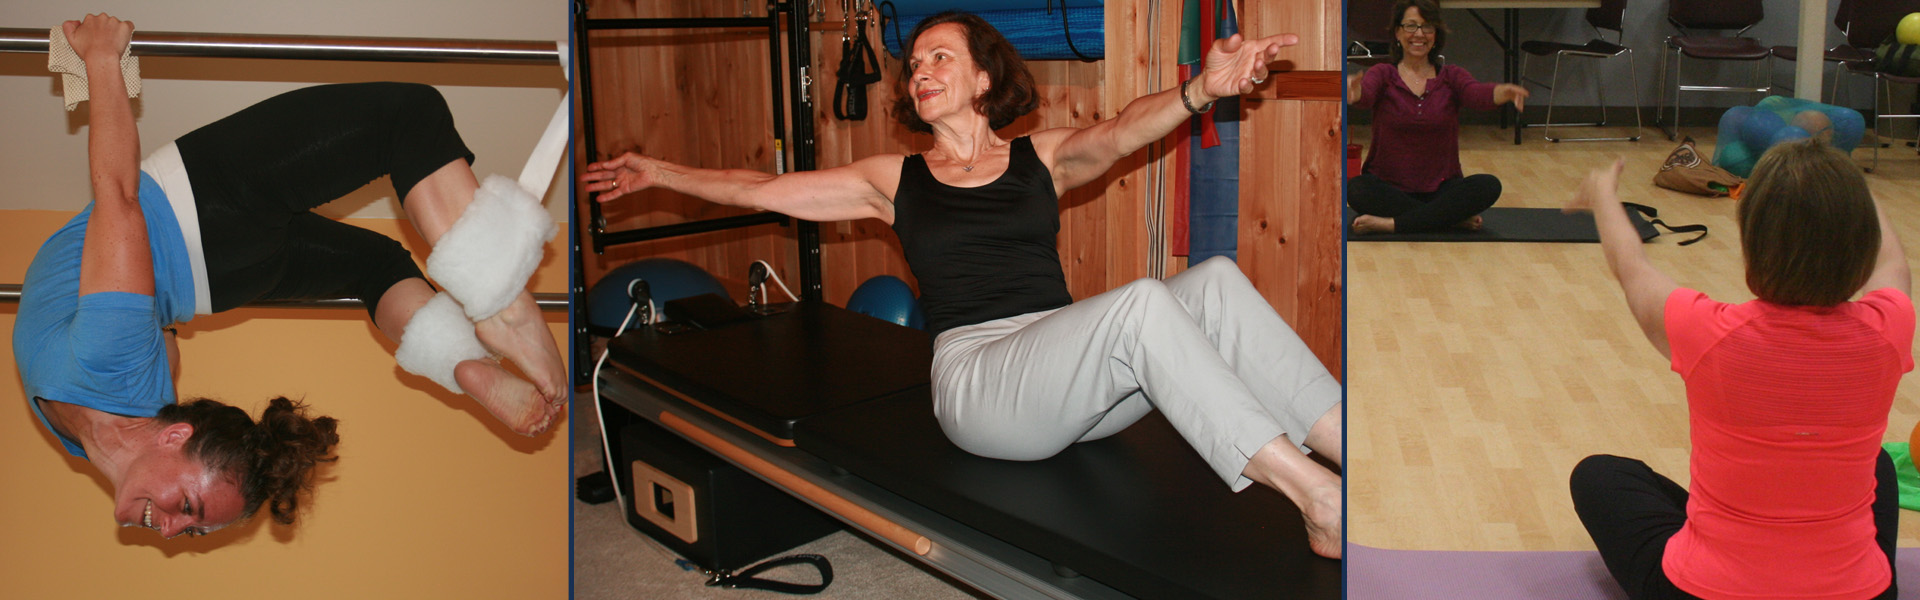 Personal-Euphoria-Pilates-Classes-in-Connecticut